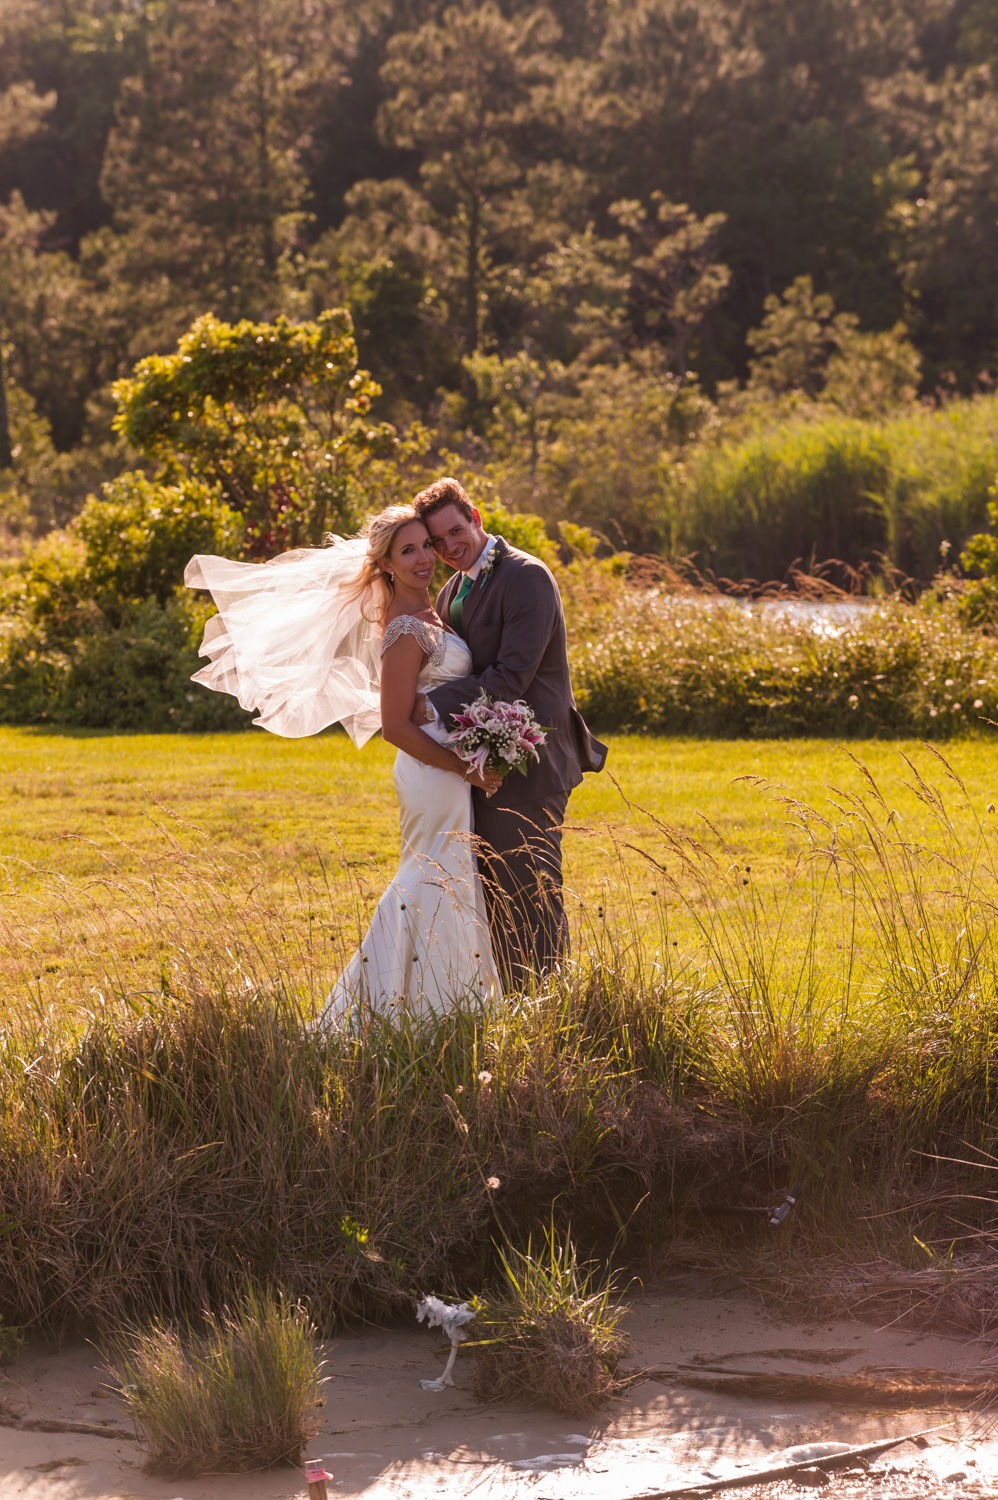 BridalPulse - An Outdoor Vineyard Wedding in NC By Rent My Wedding